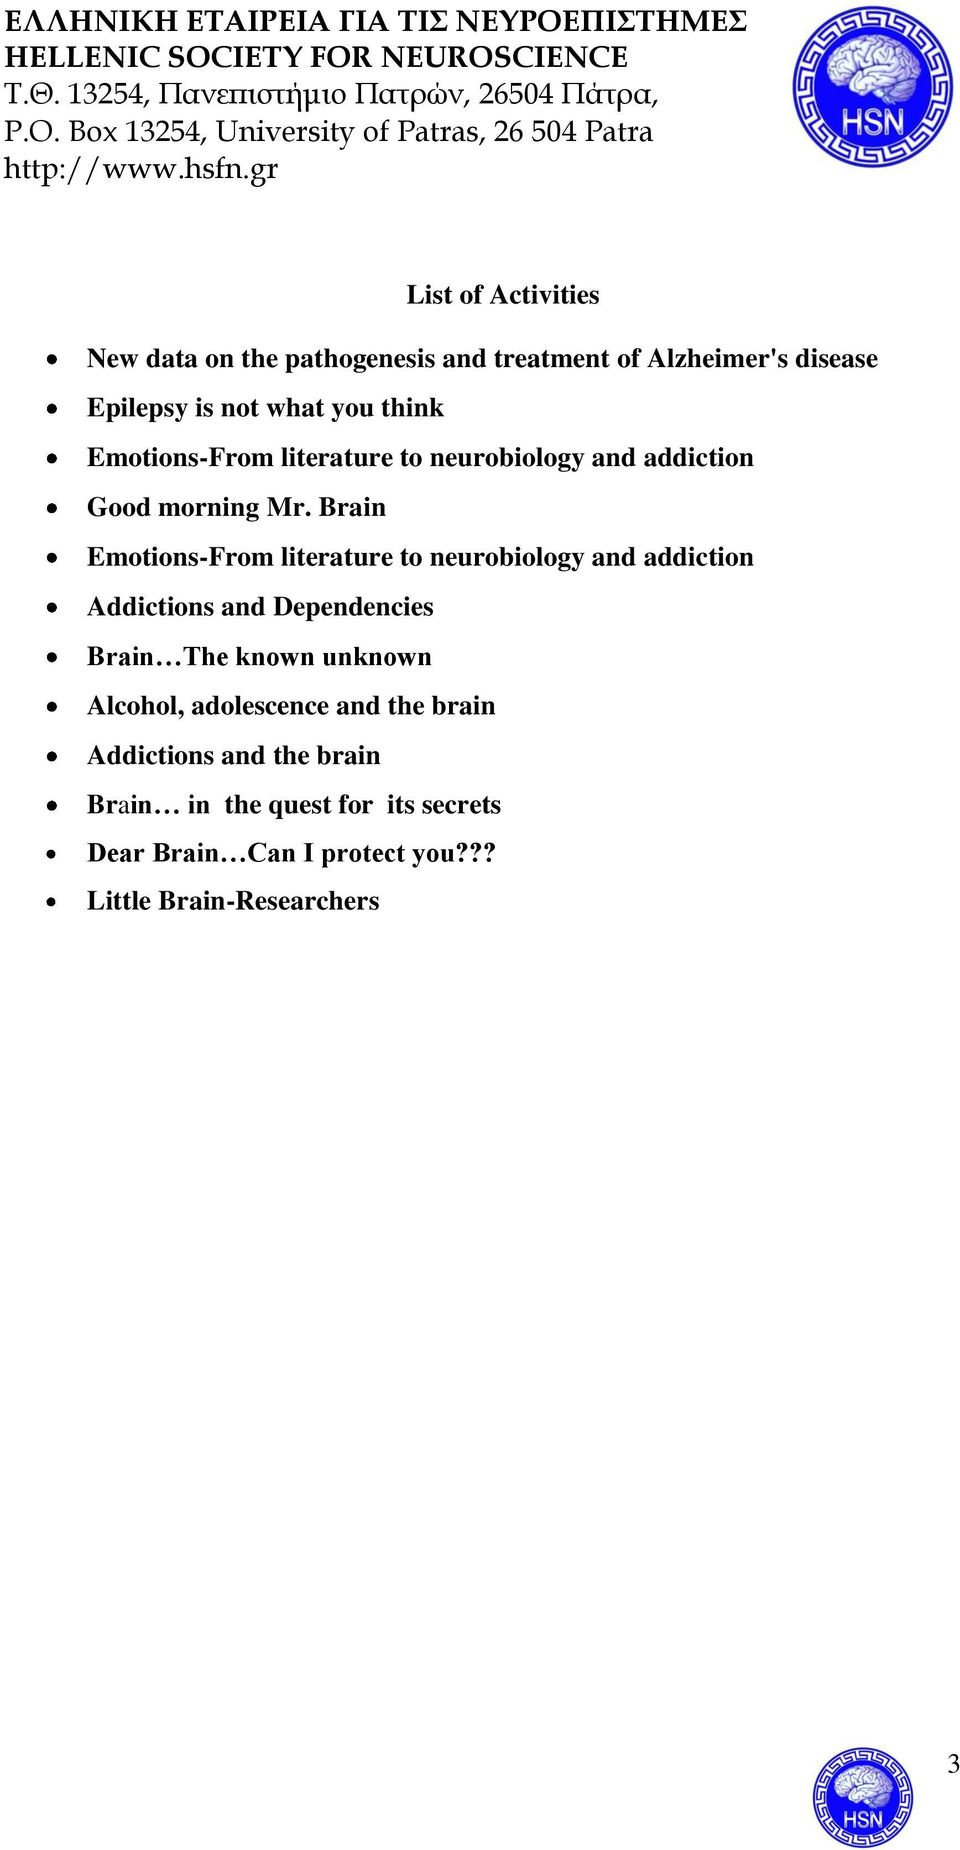 Brain Emotions-From literature to neurobiology and addiction Addictions and Dependencies Brain The known unknown